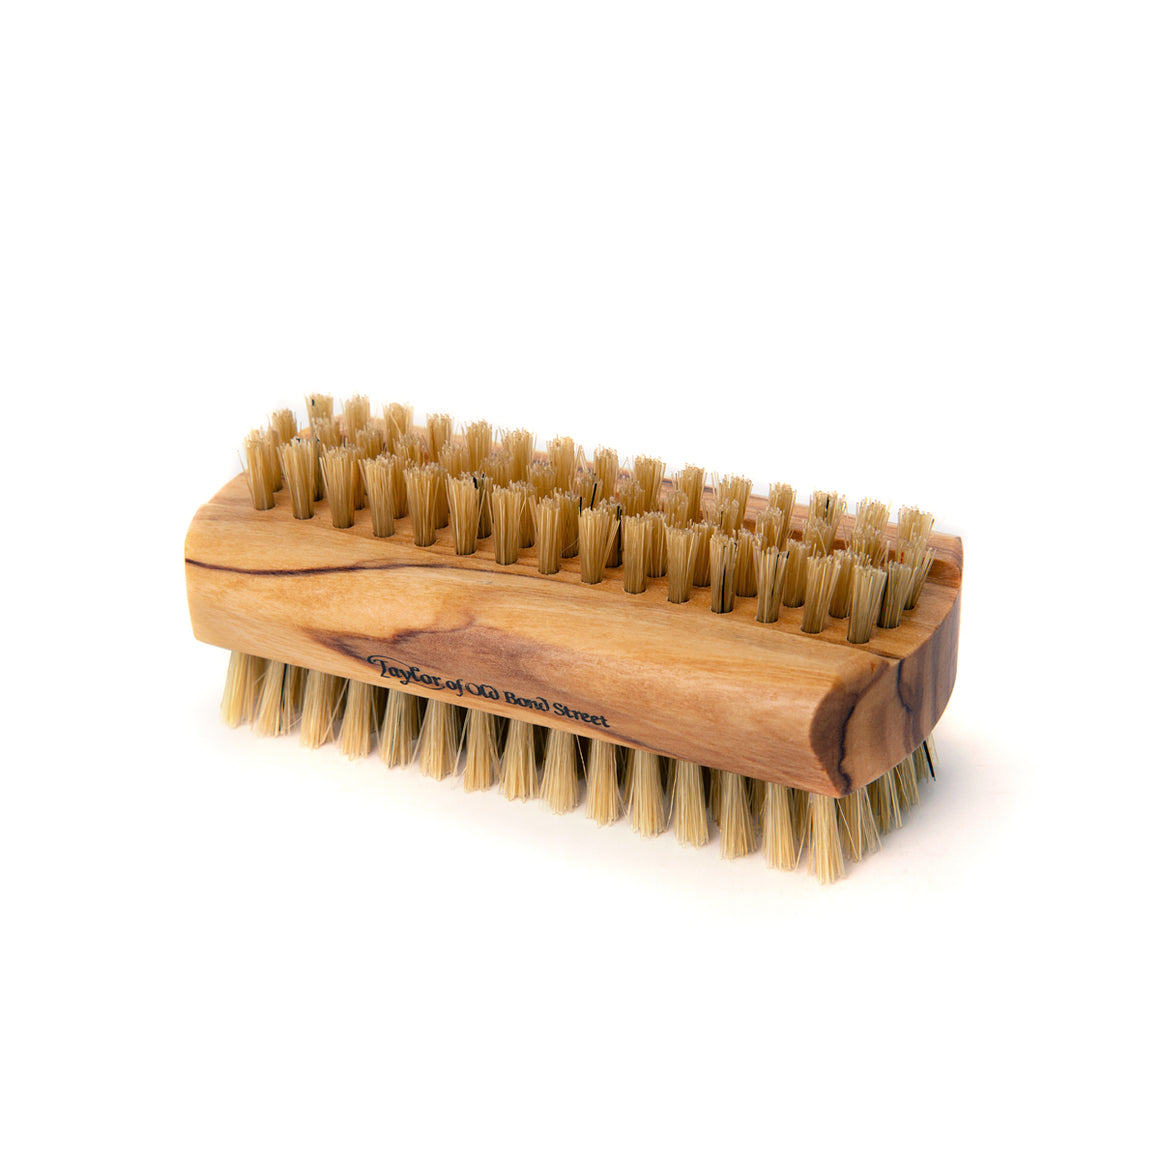 Medium Olivewood Pure Bristle Nail Brush